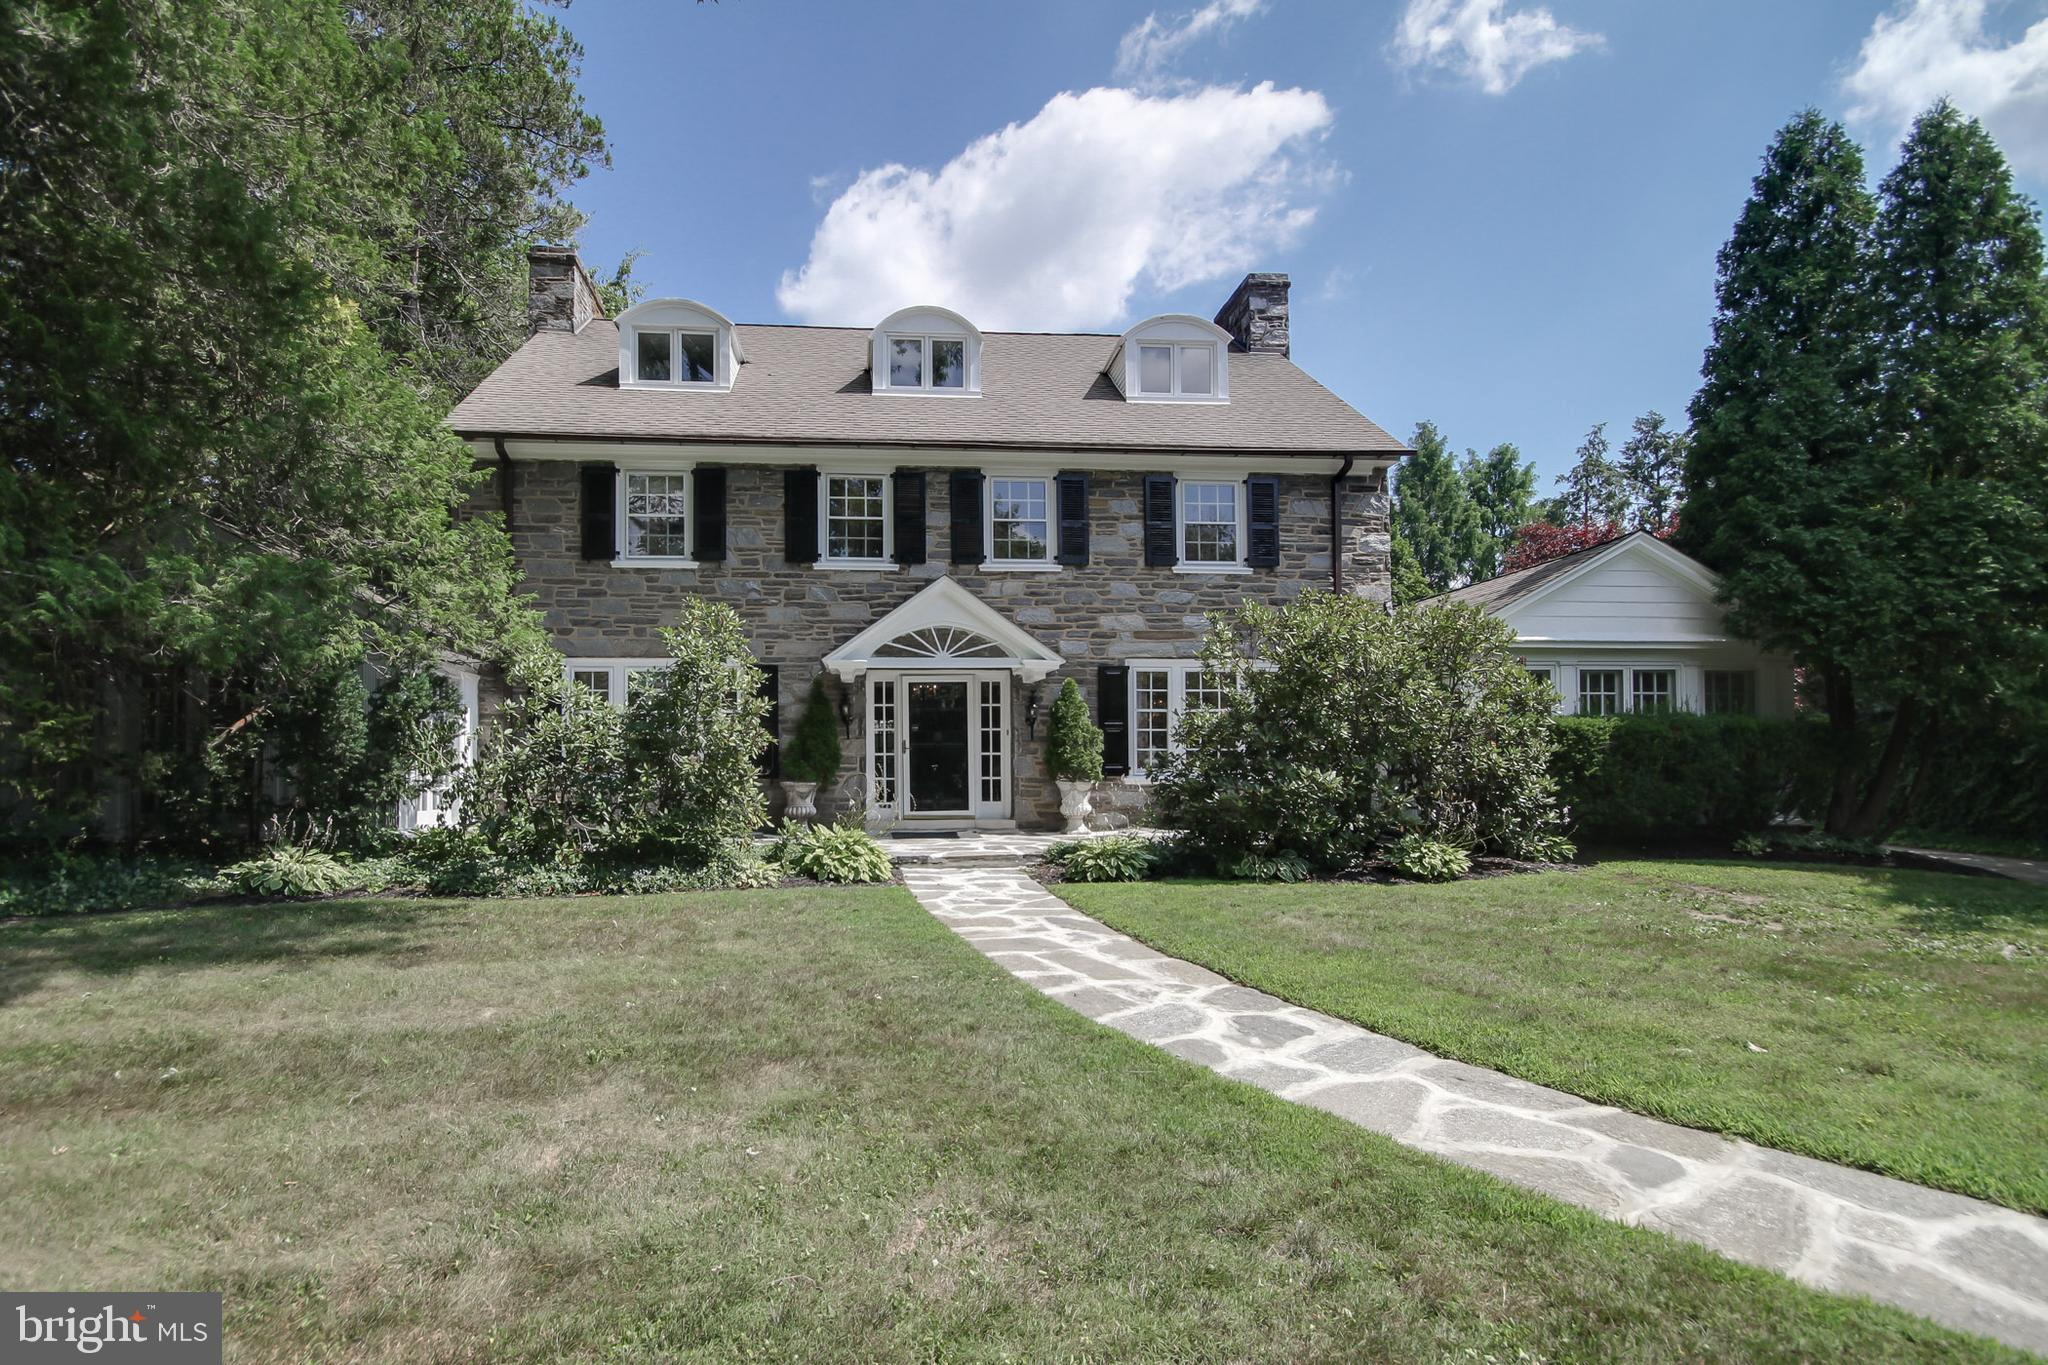 415 MONTGOMERY AVENUE, MERION STATION, PA 19066